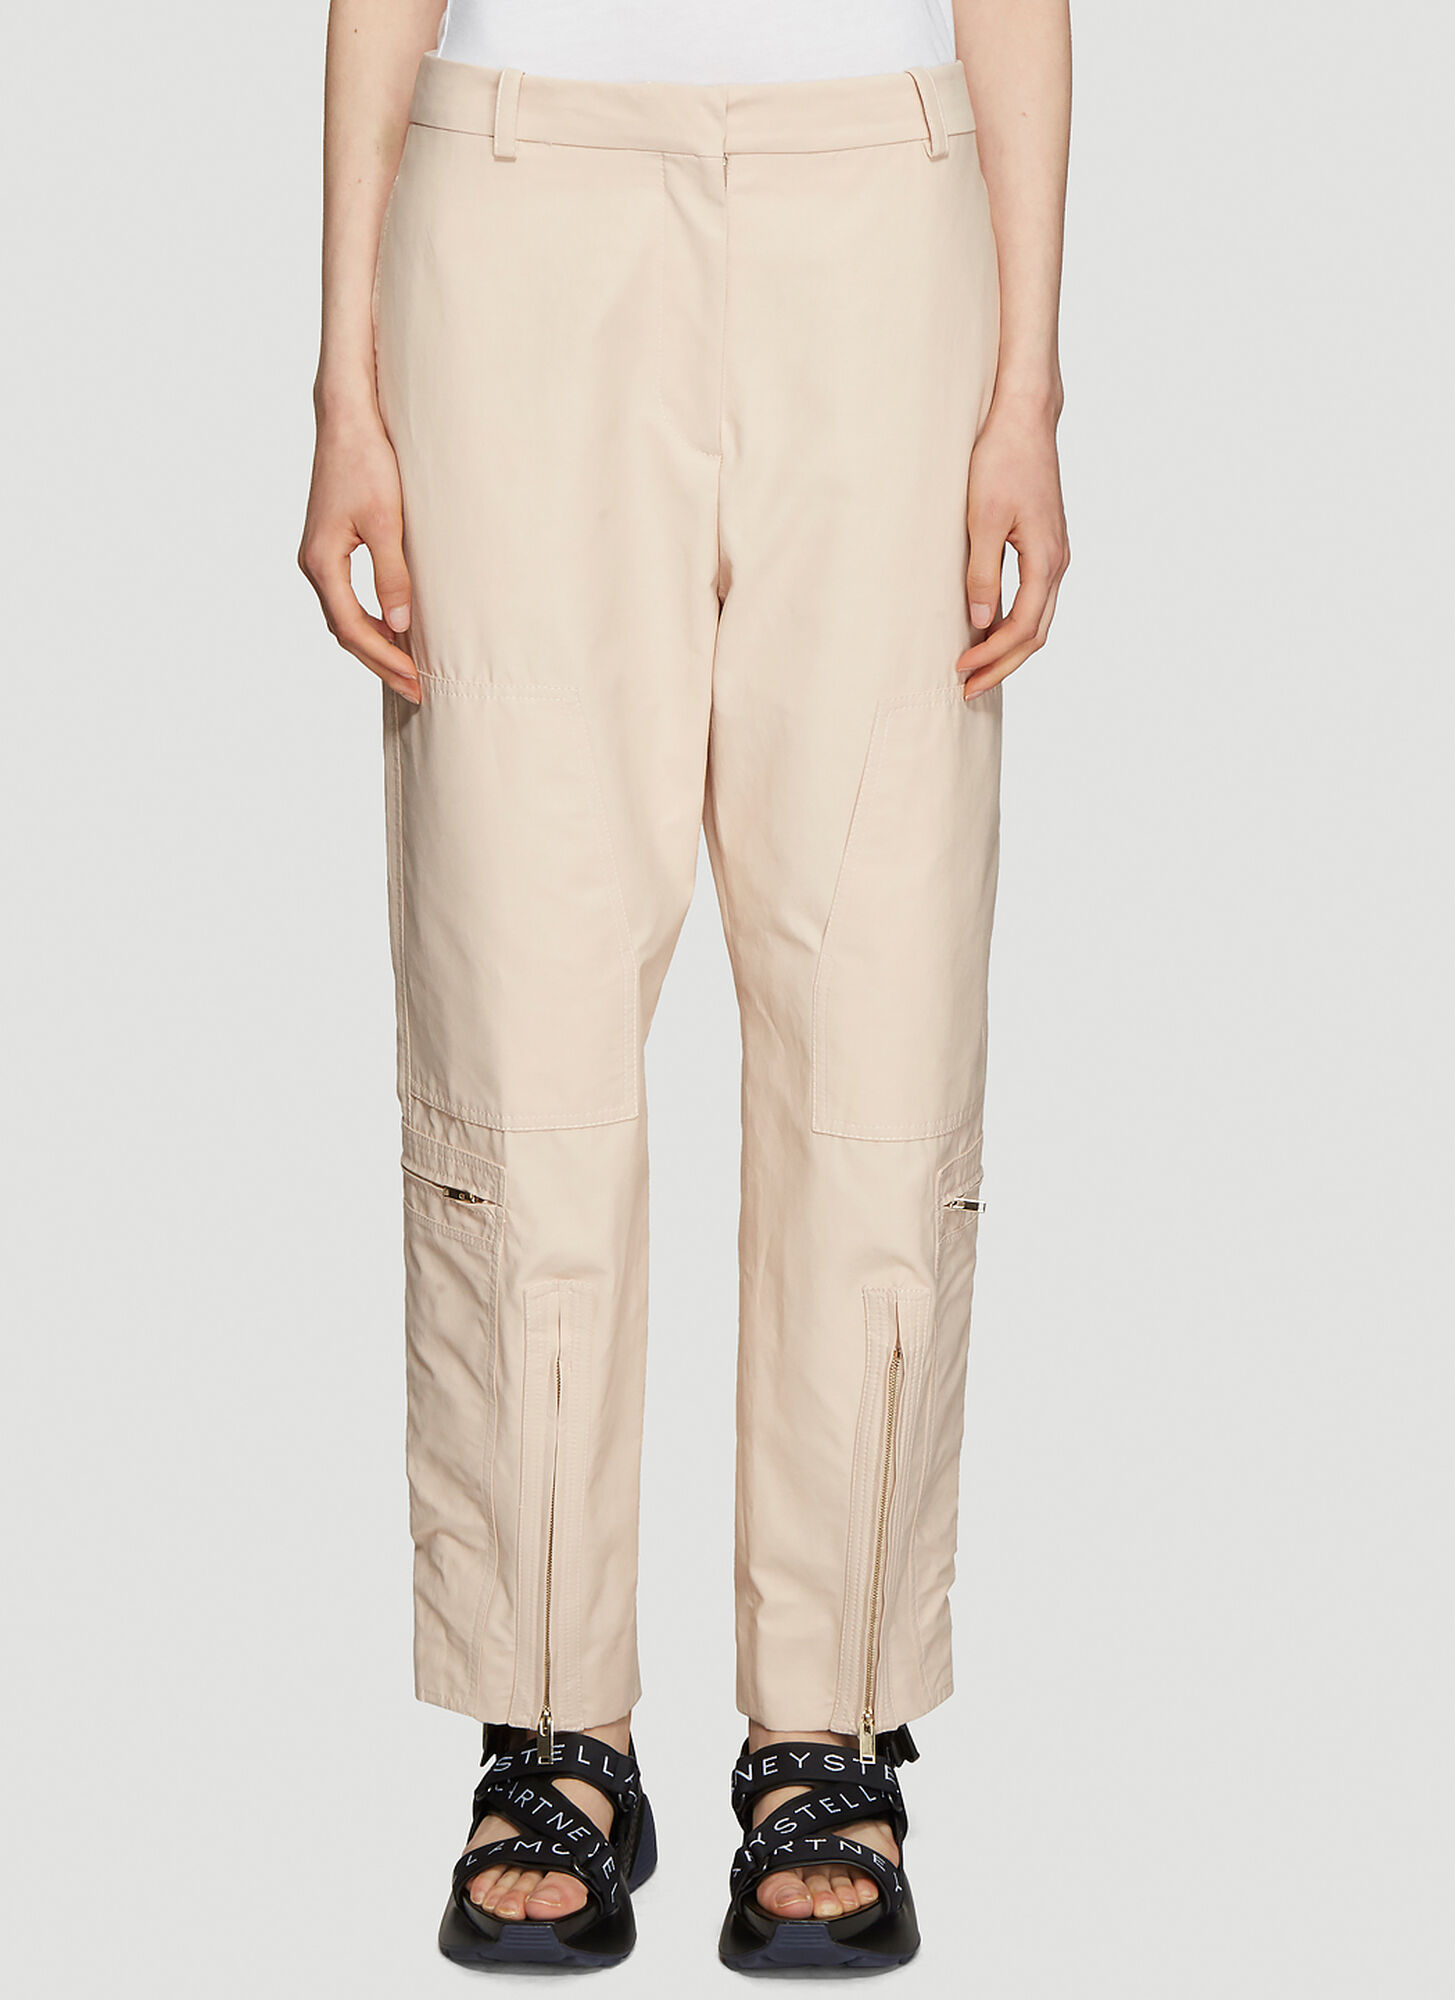 Stella McCartney High Waist Utility Trousers in Pink